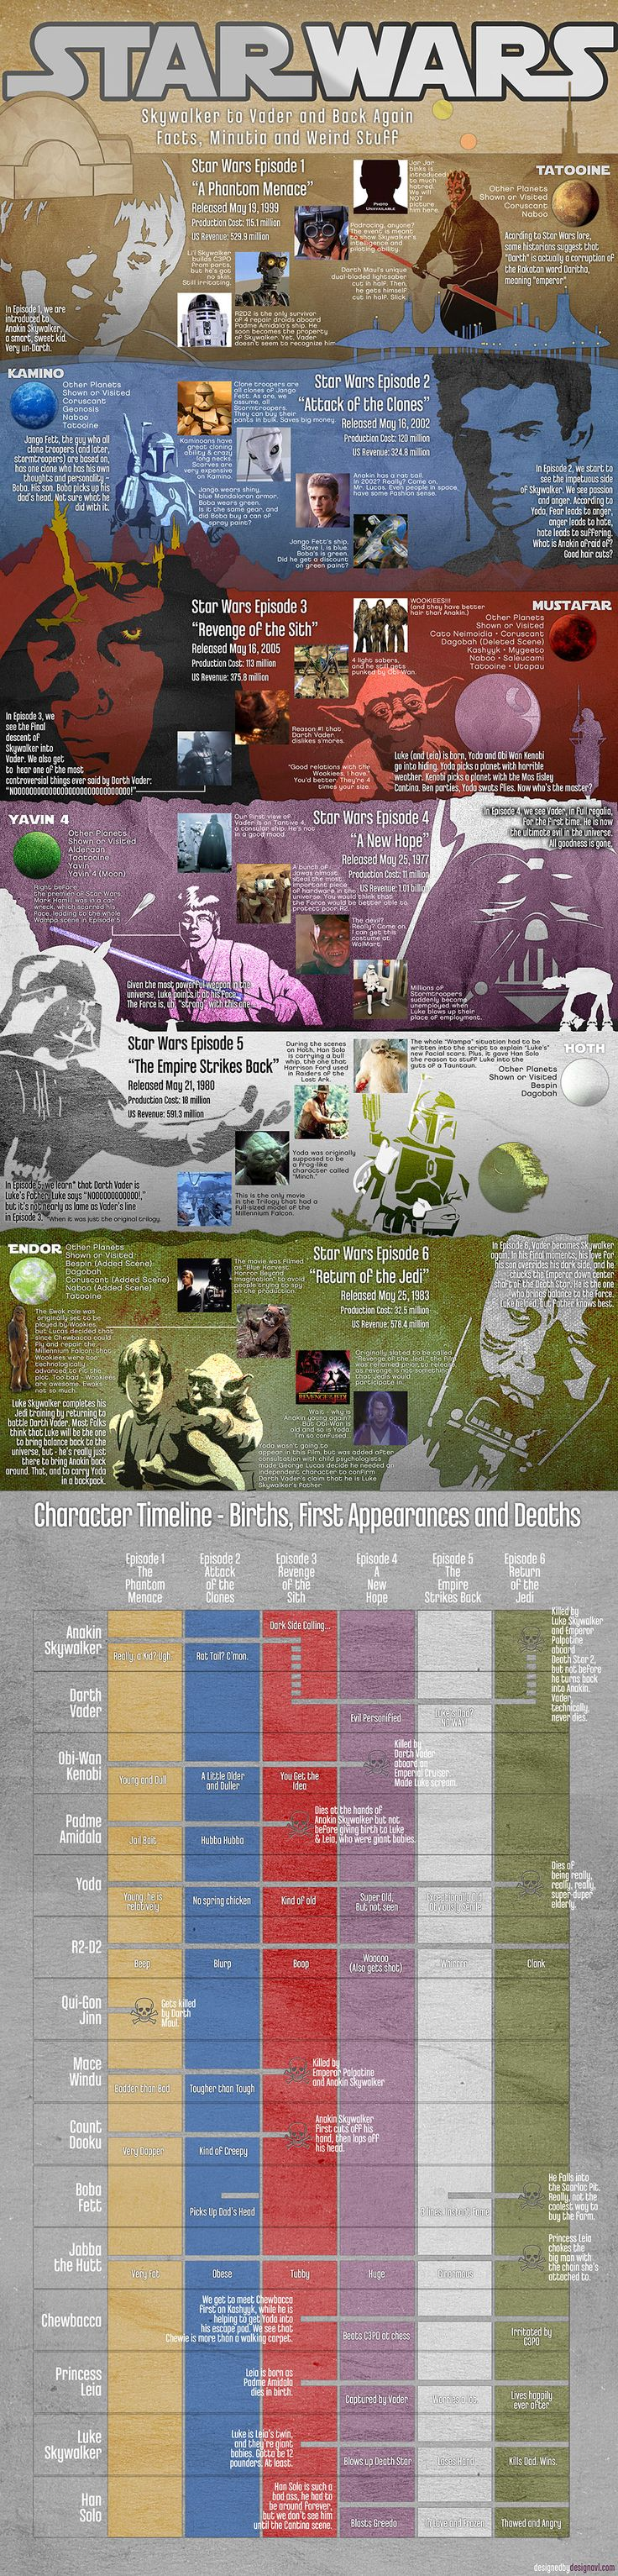 Tips to Dig Into Star Wars History At-a-glance - Tipsographic